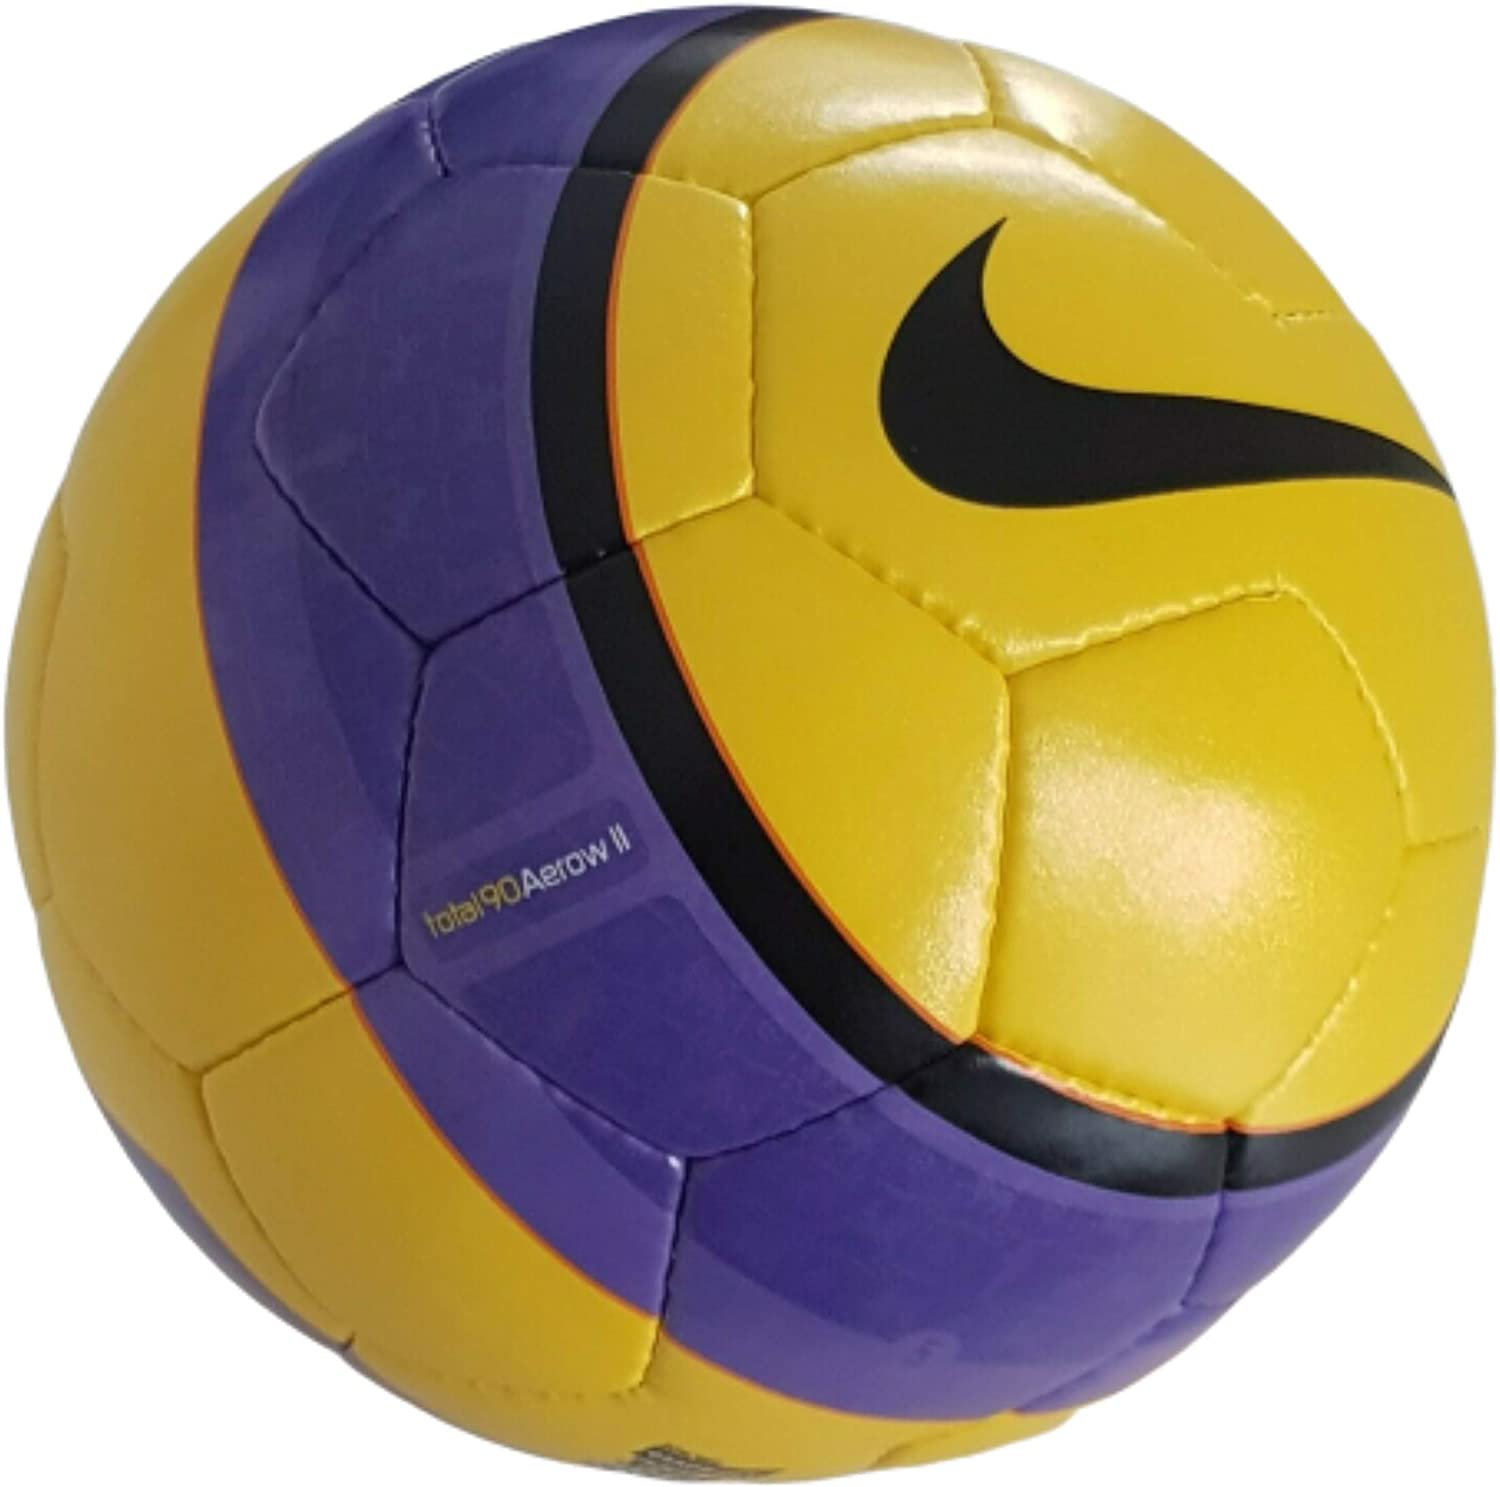 Agricultura Servicio tomar  Nike T90 Aerow II Football 2006/07 Premier League Official Pro Match Ball  Soccer Hi-Vis Fifa Approved New Size 5: Amazon.co.uk: Sports & Outdoors